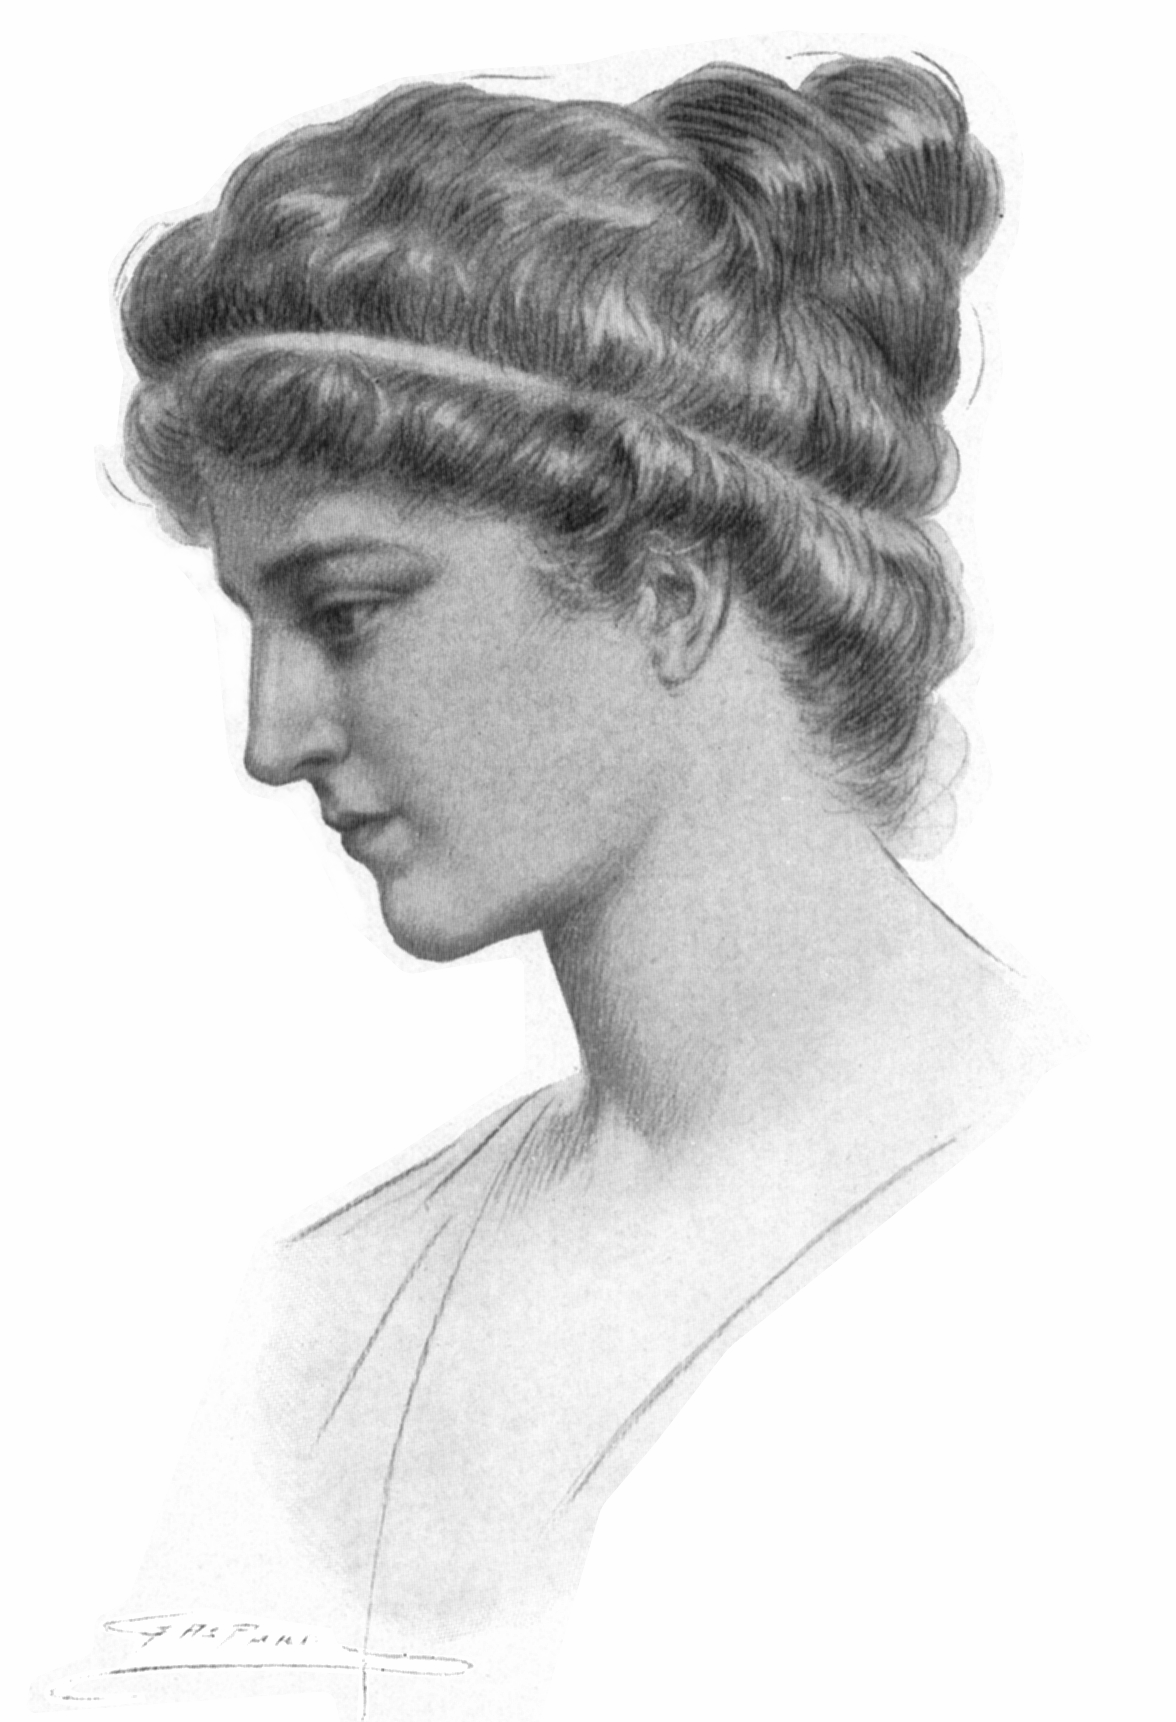 the life and work of hypatia Hypatia's name was also put on work done by other mathematicians she spent part of her life in the ancient mediterranean to expand her education.